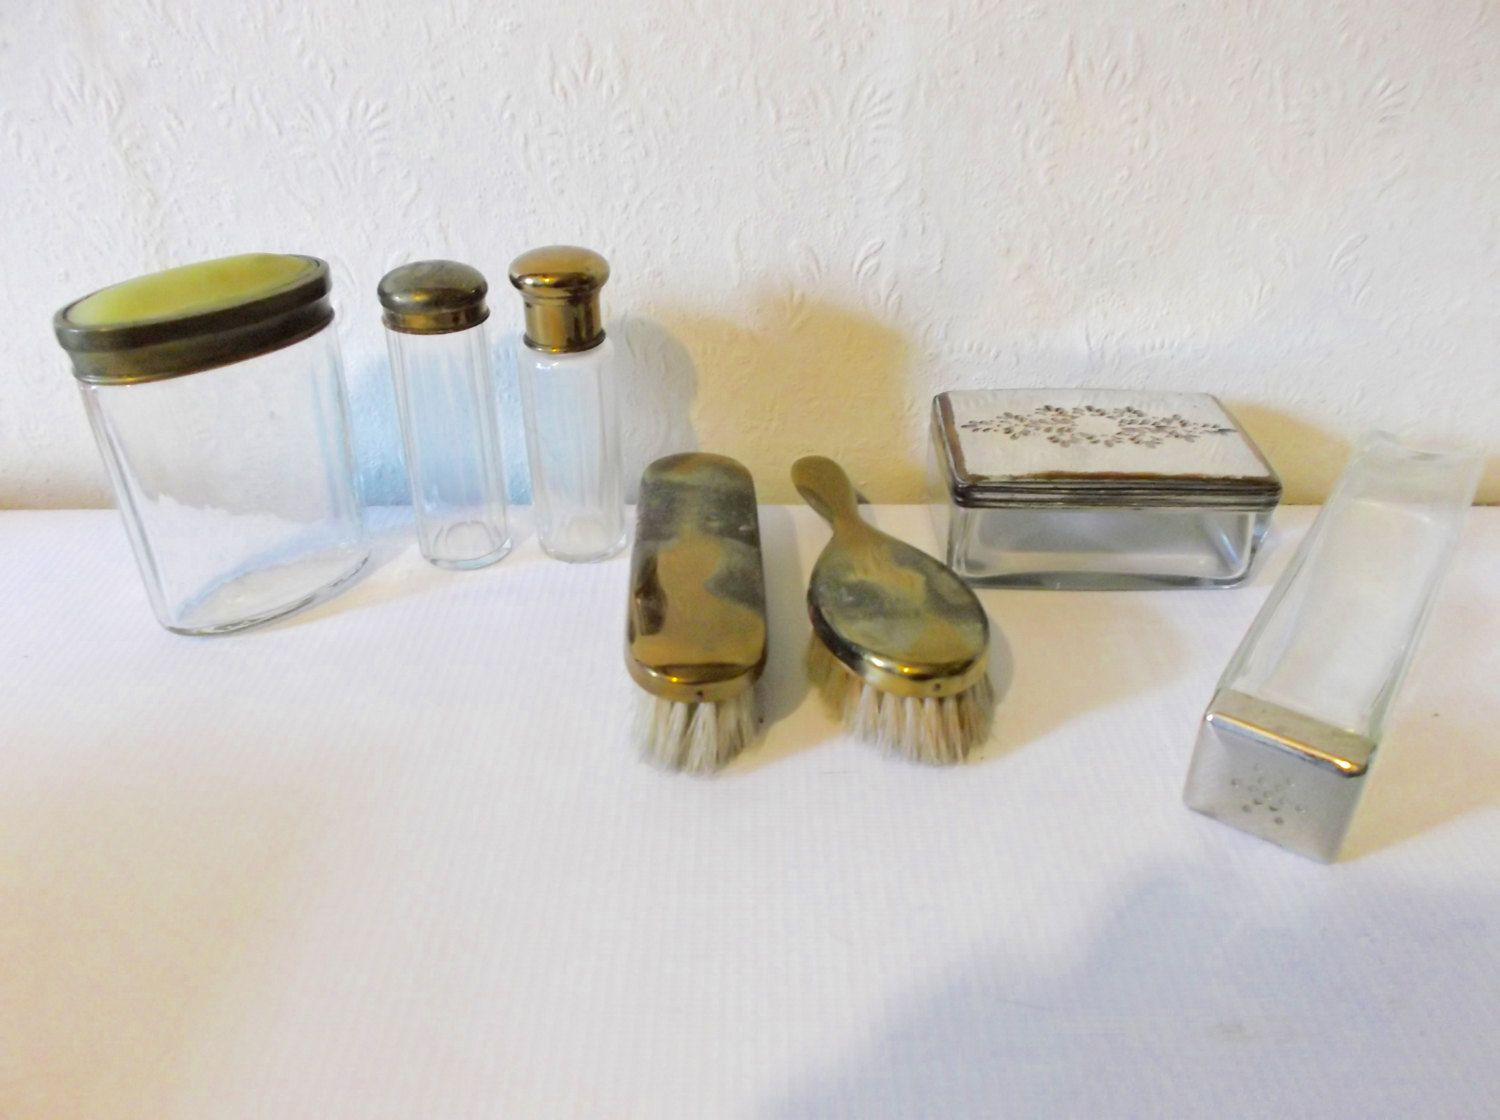 Antique grooming set edwardian vanity set boudoir apothecary antique edwardian vanity set boudoir apothecary bottles by retromagination on etsy geotapseo Gallery